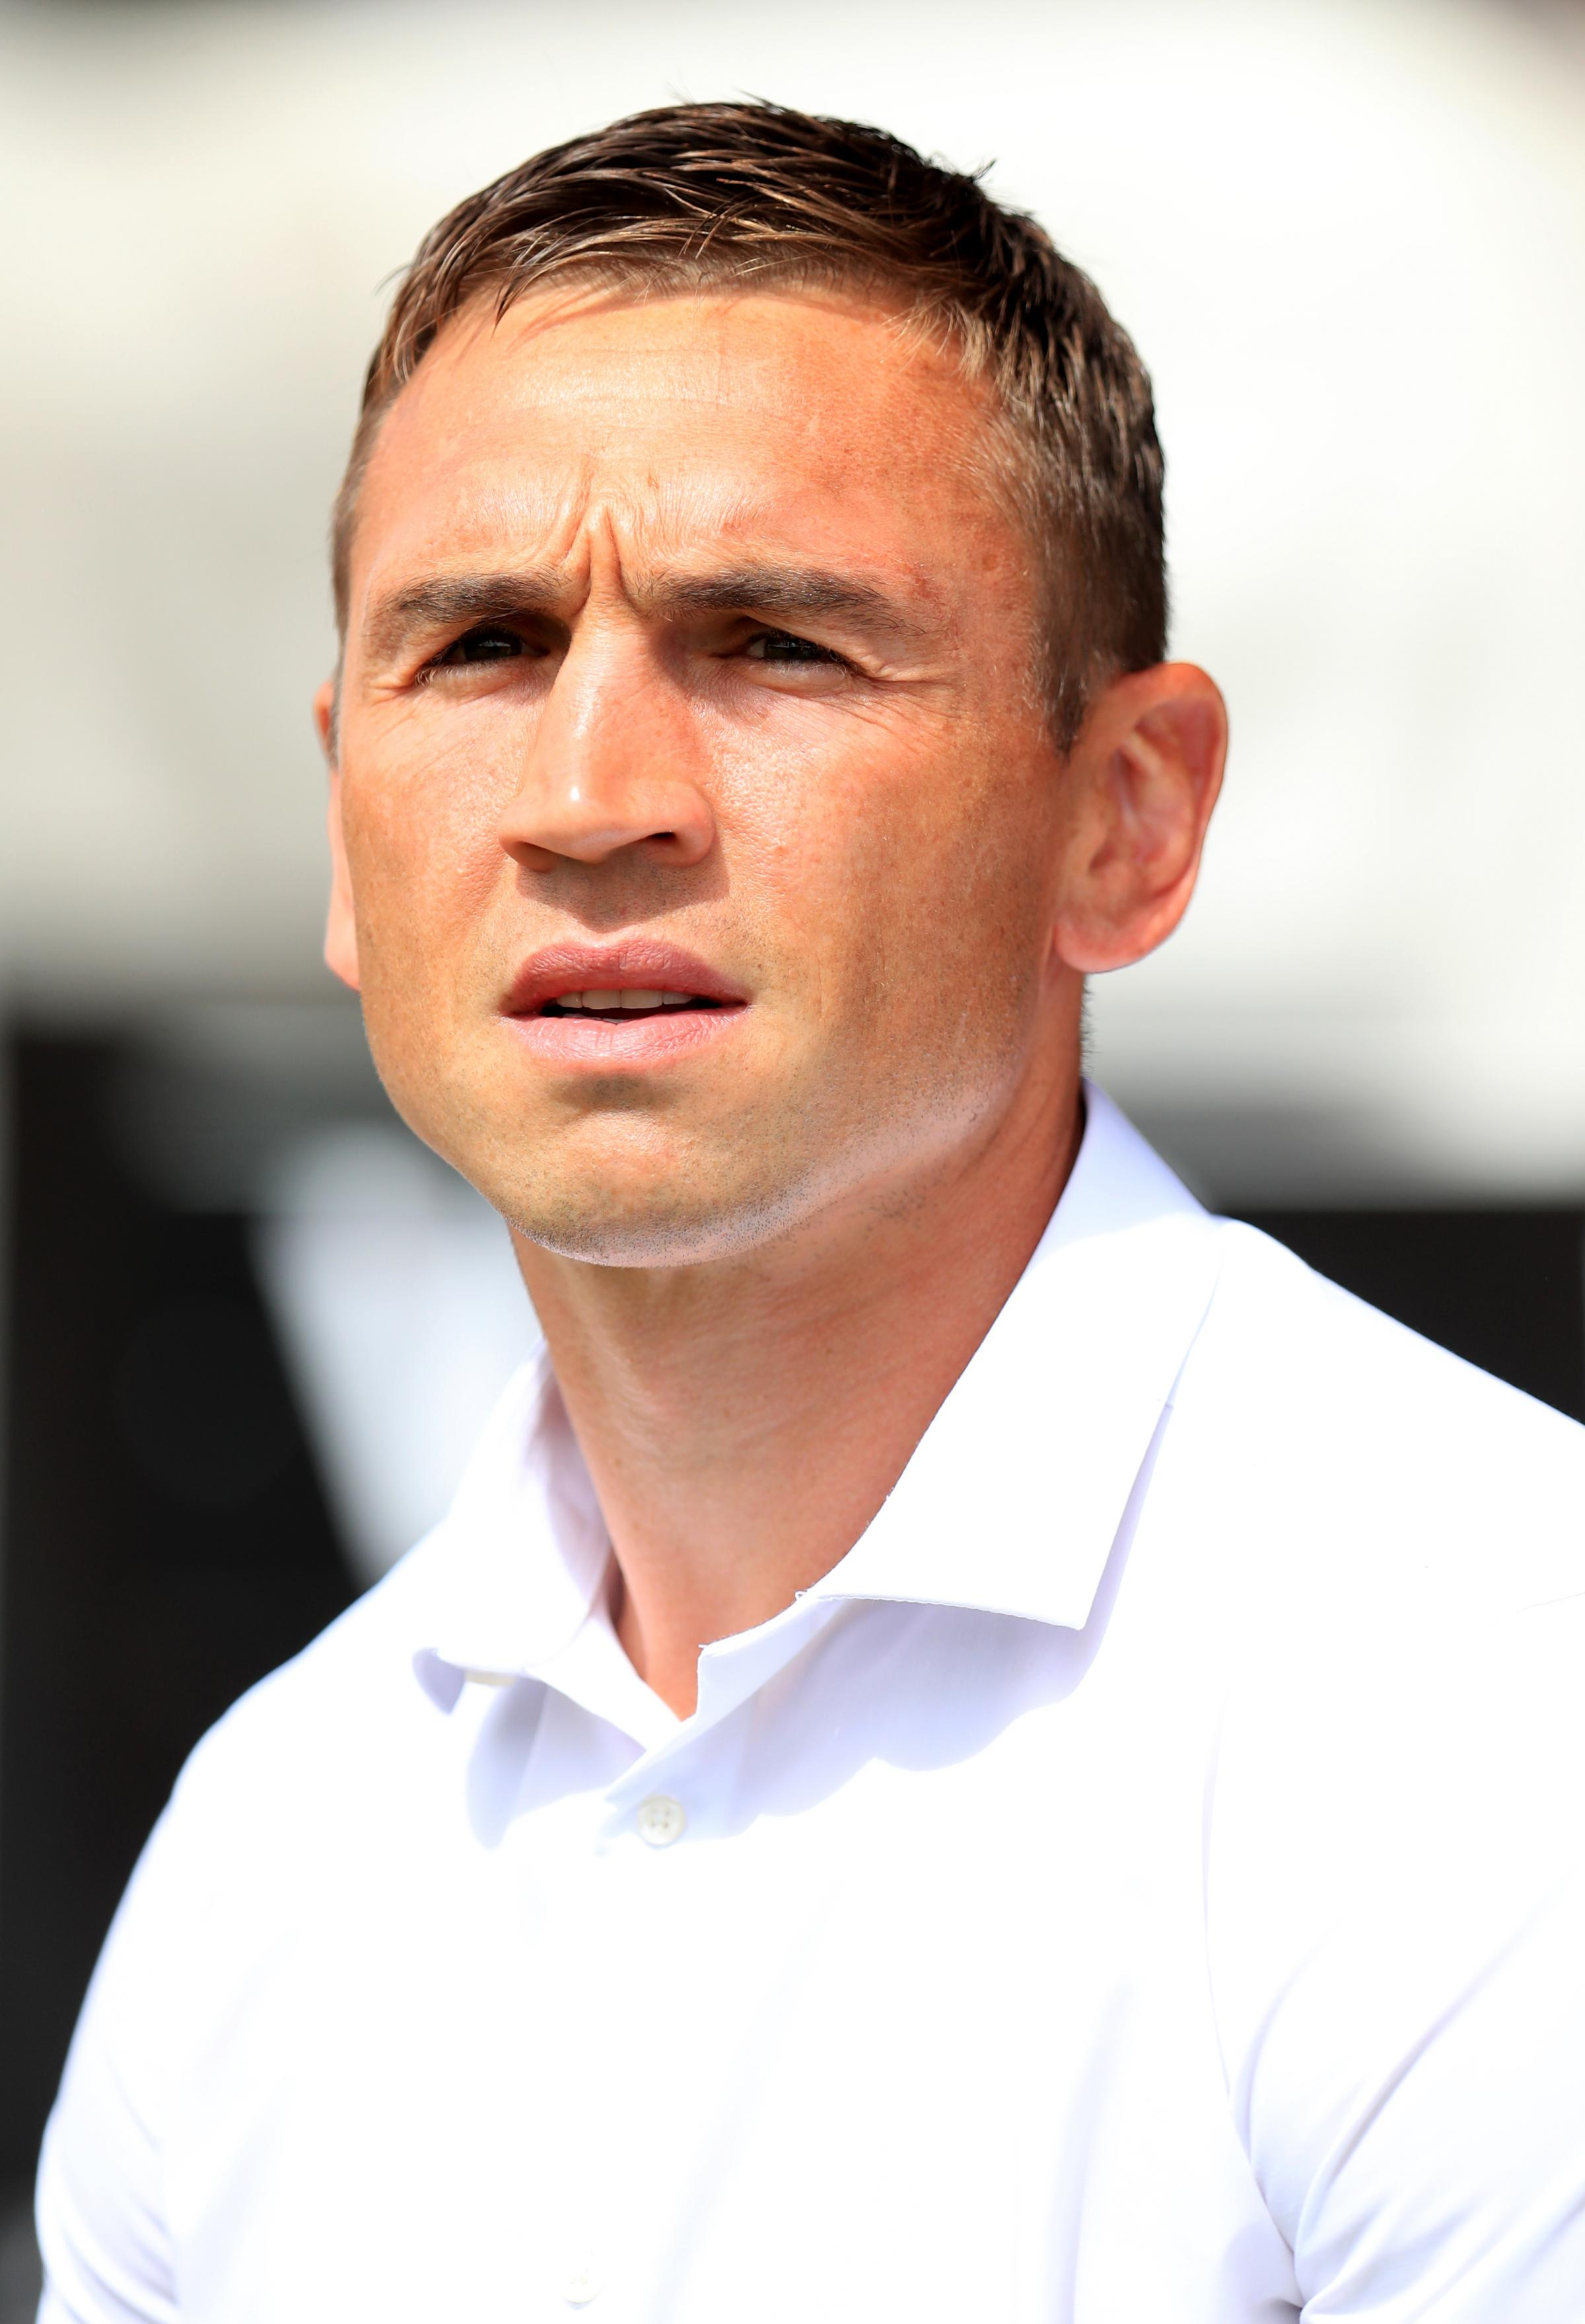 Leeds Rhinos' director of rugby Kevin Sinfield.